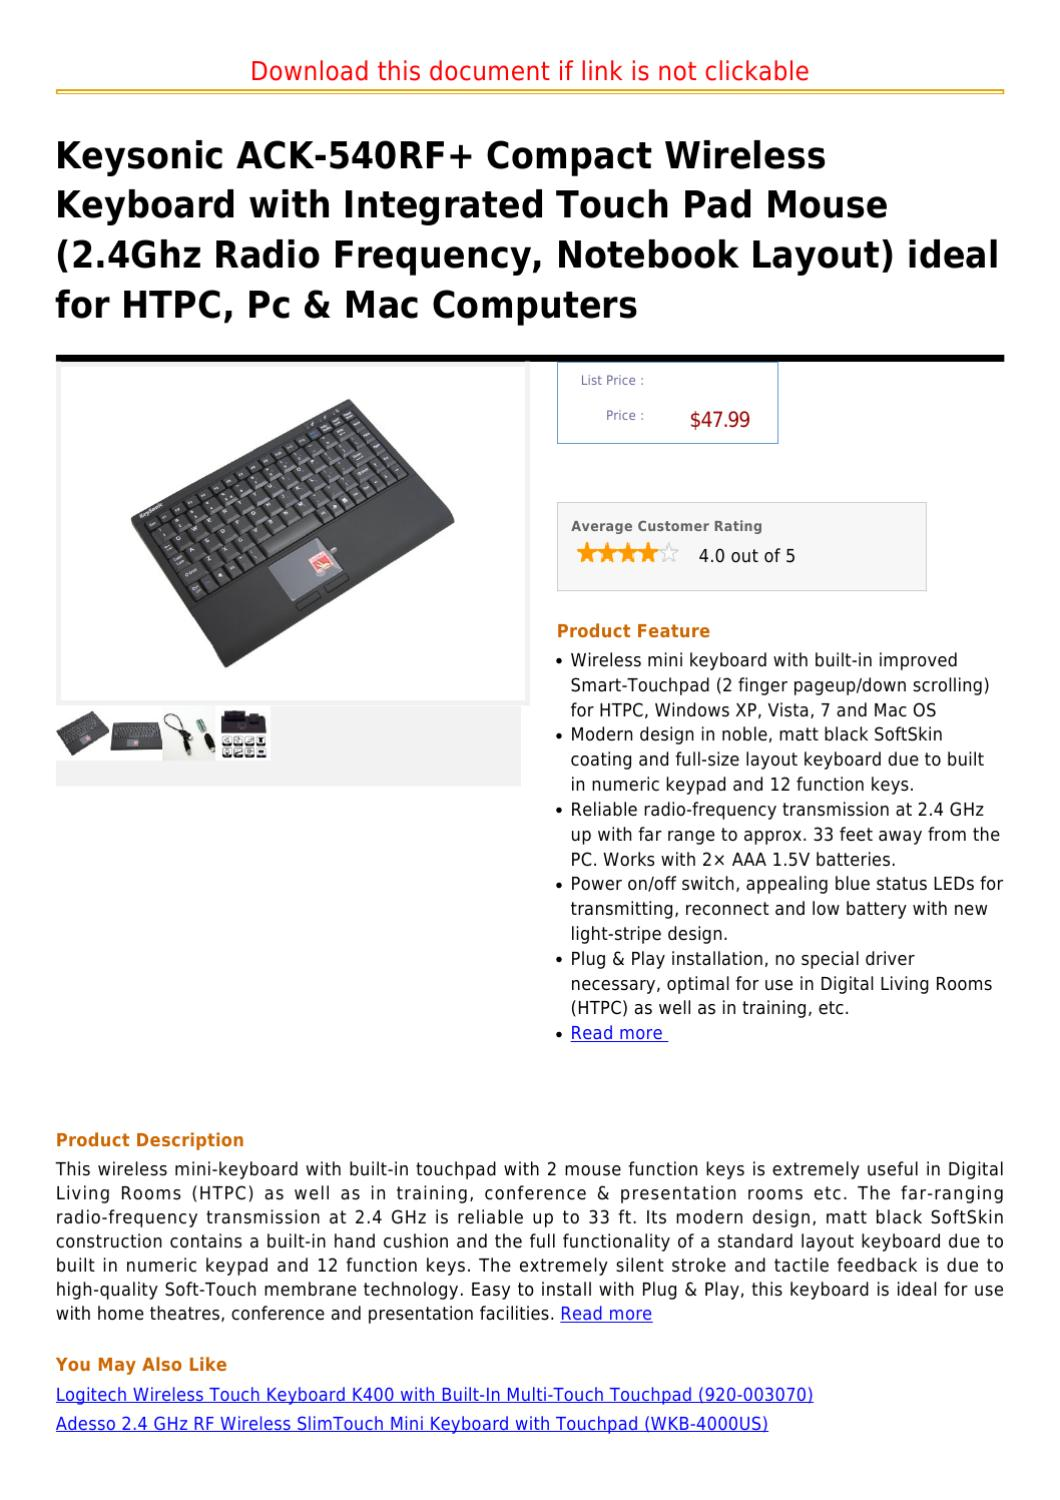 keysonic ack 540rf compact wireless keyboard with integrated touch pad mouse 2 4ghz radio. Black Bedroom Furniture Sets. Home Design Ideas